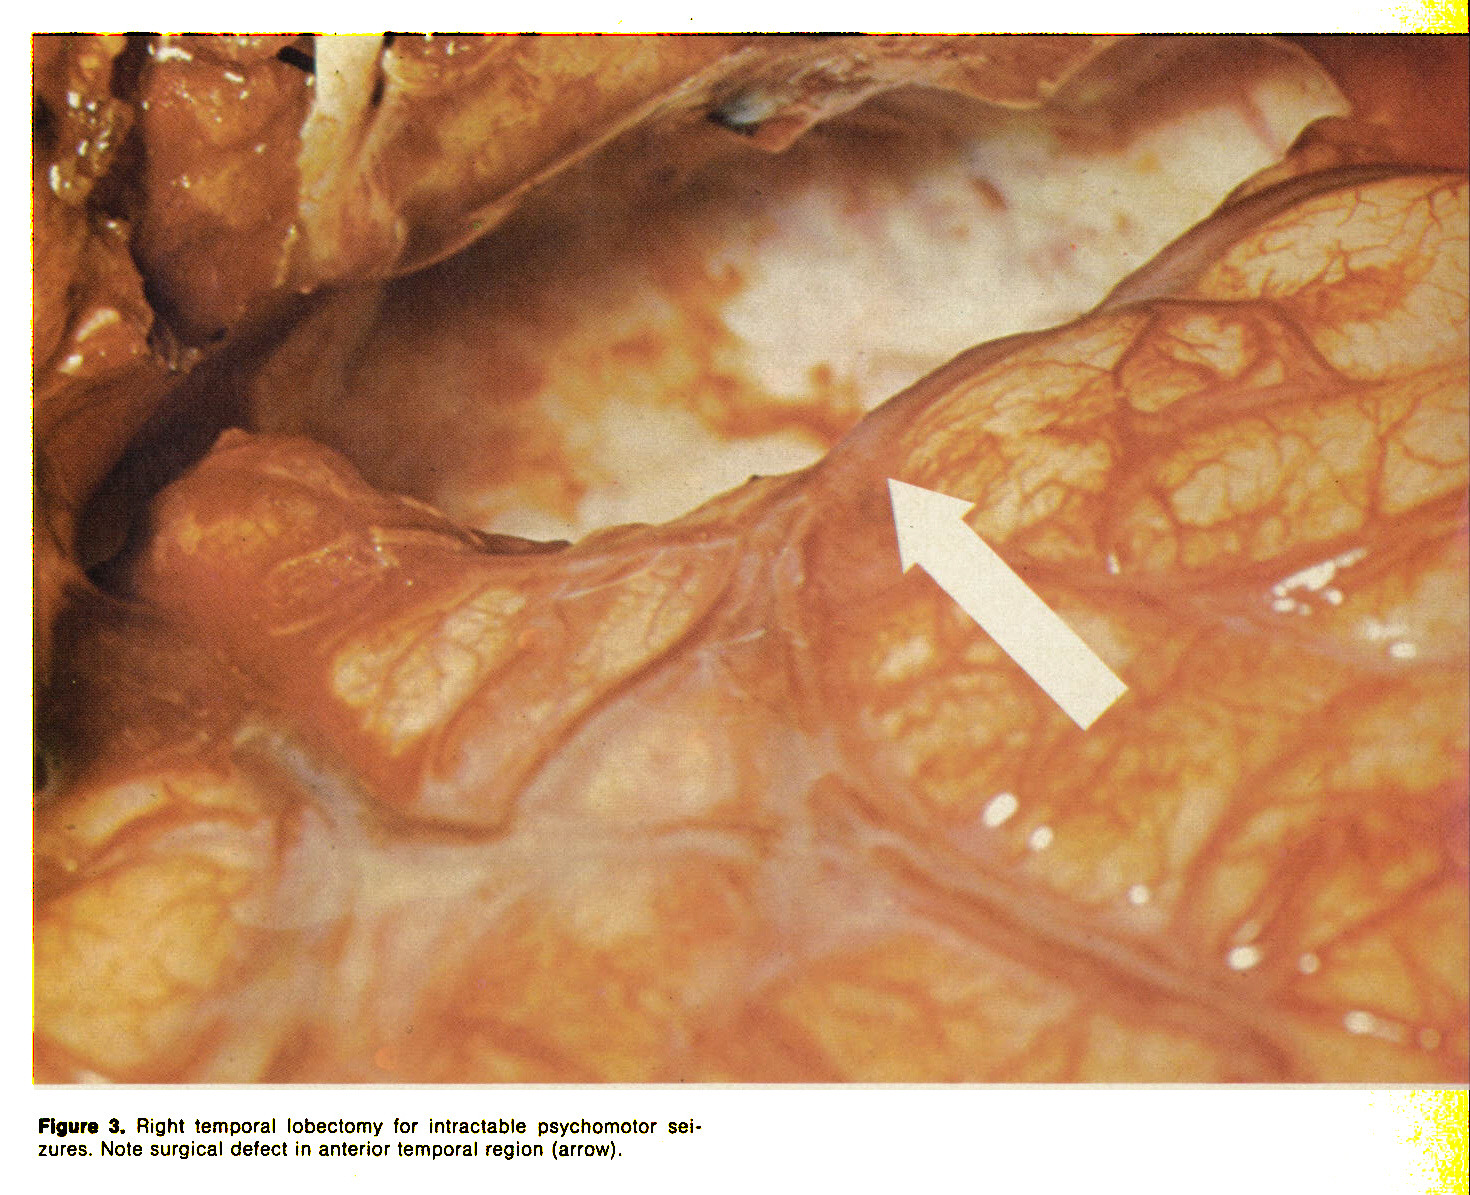 Figure 3. Right temporal lobectomy for intractable psychomotor seizures. Note surgical defect in anterior temporal region (arrow).